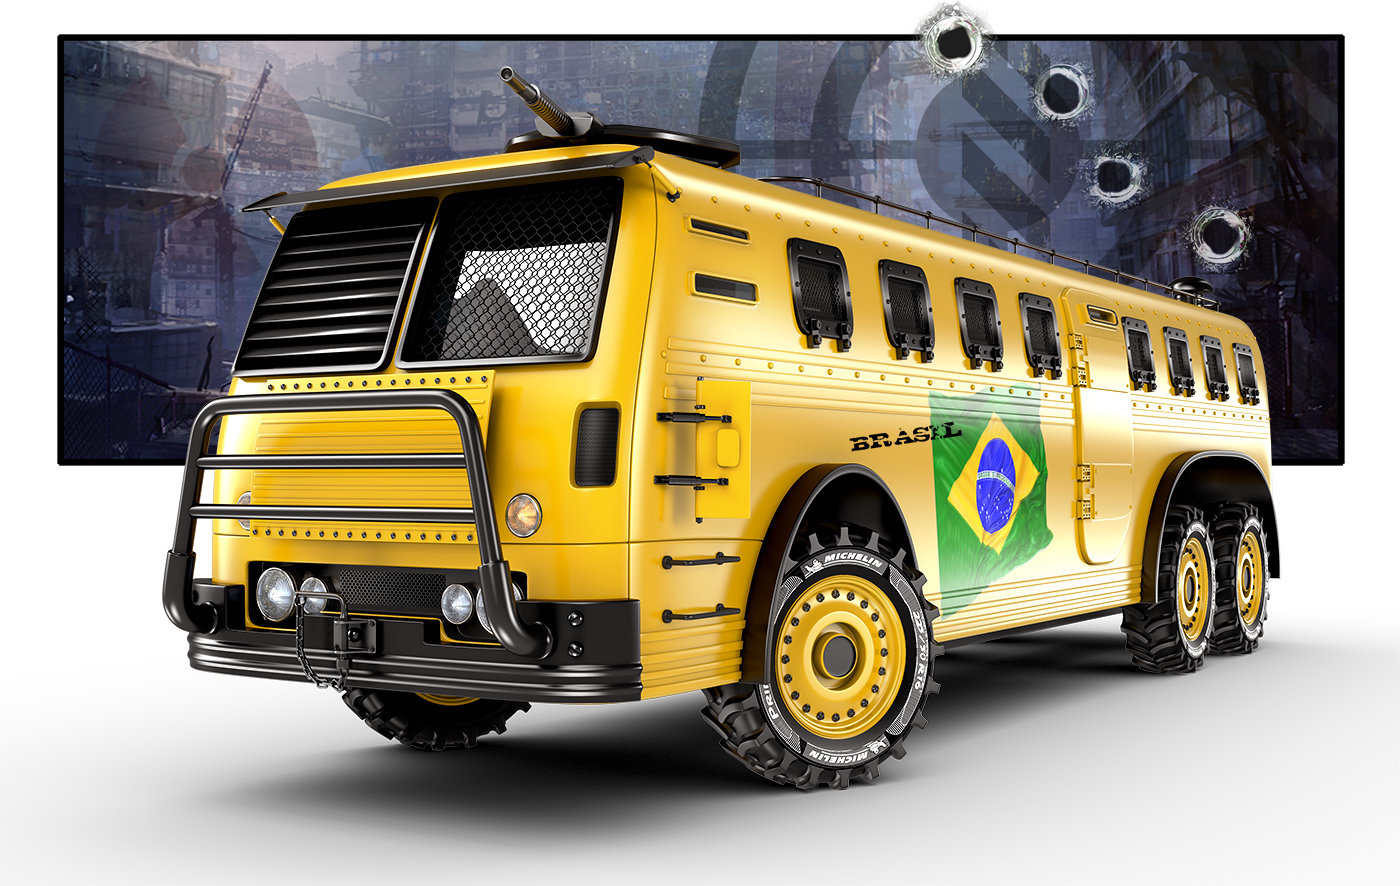 Jomar machado a world cup bus com fundo